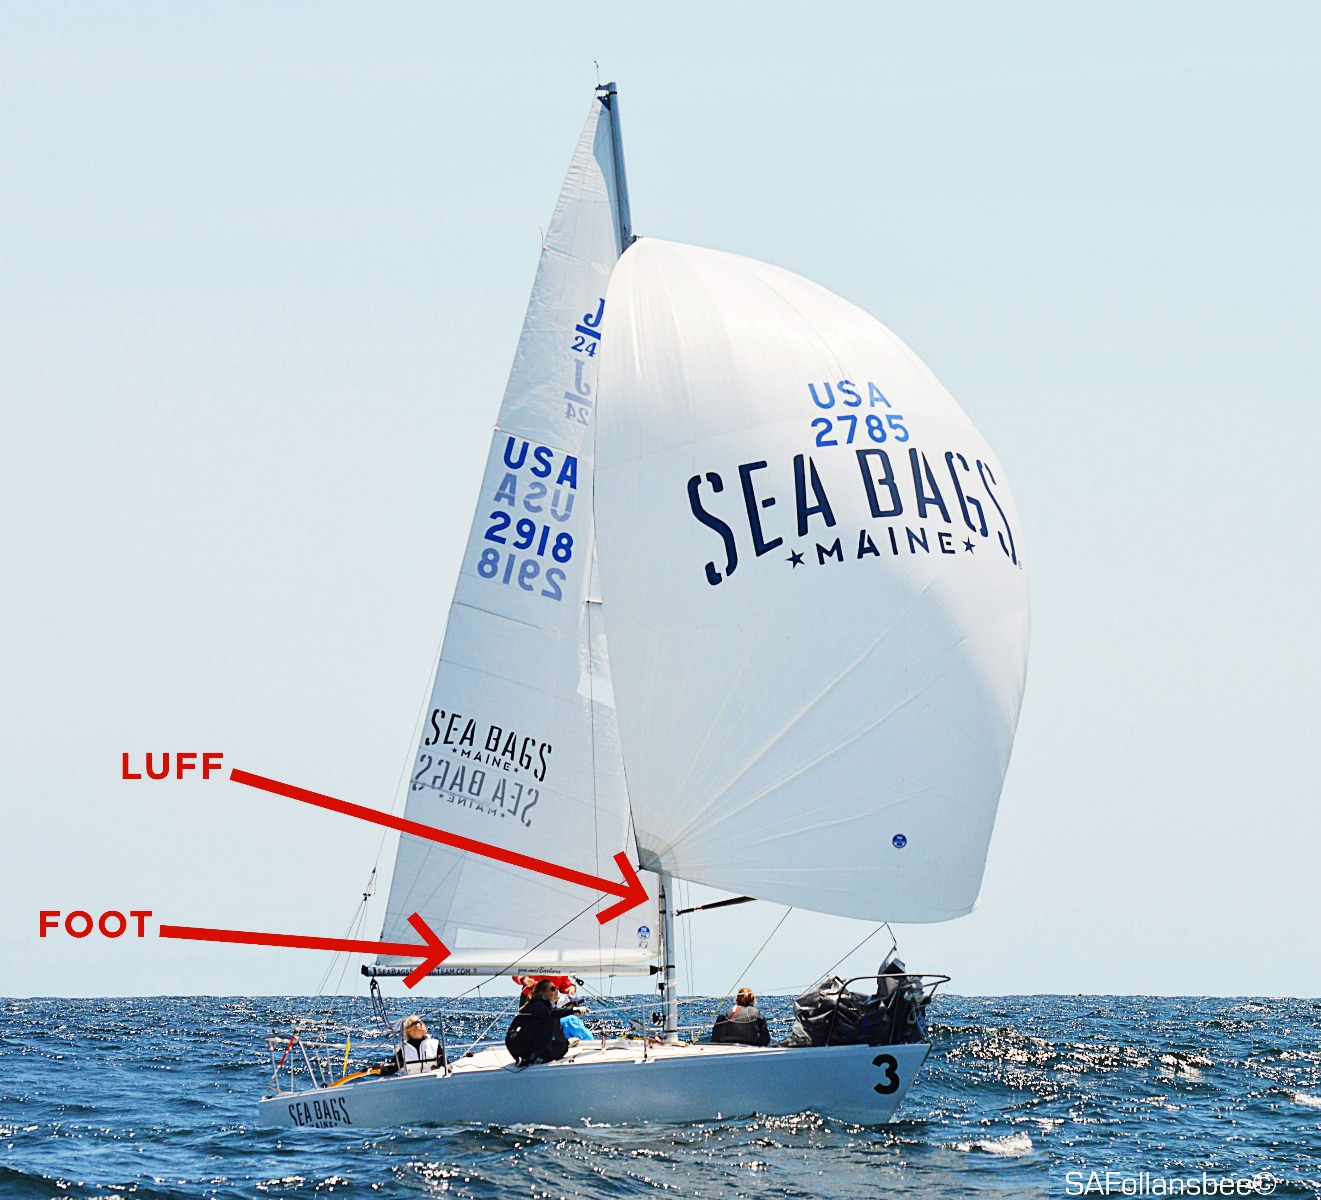 Sea Bags Women's sailing team on the water